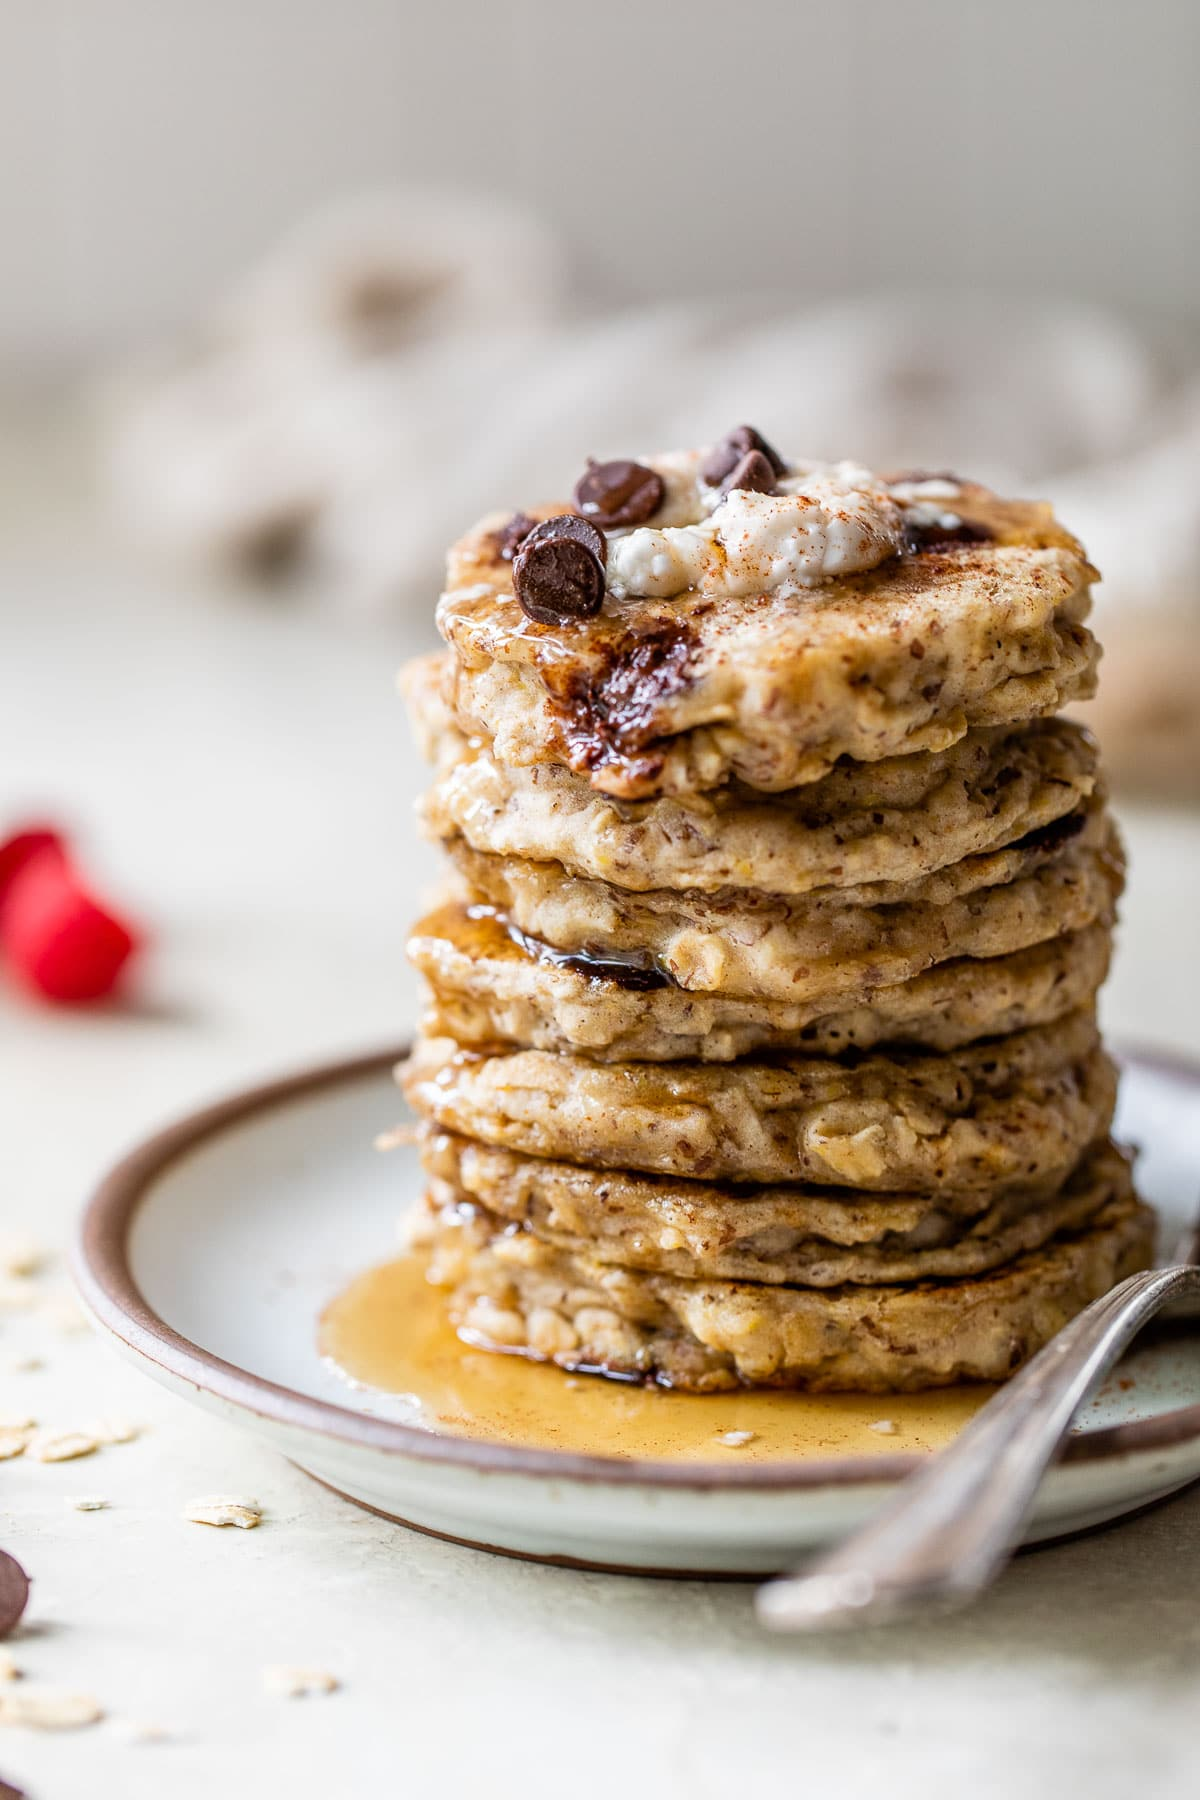 a stack of oatmeal pancakes on a plate with maple syrup